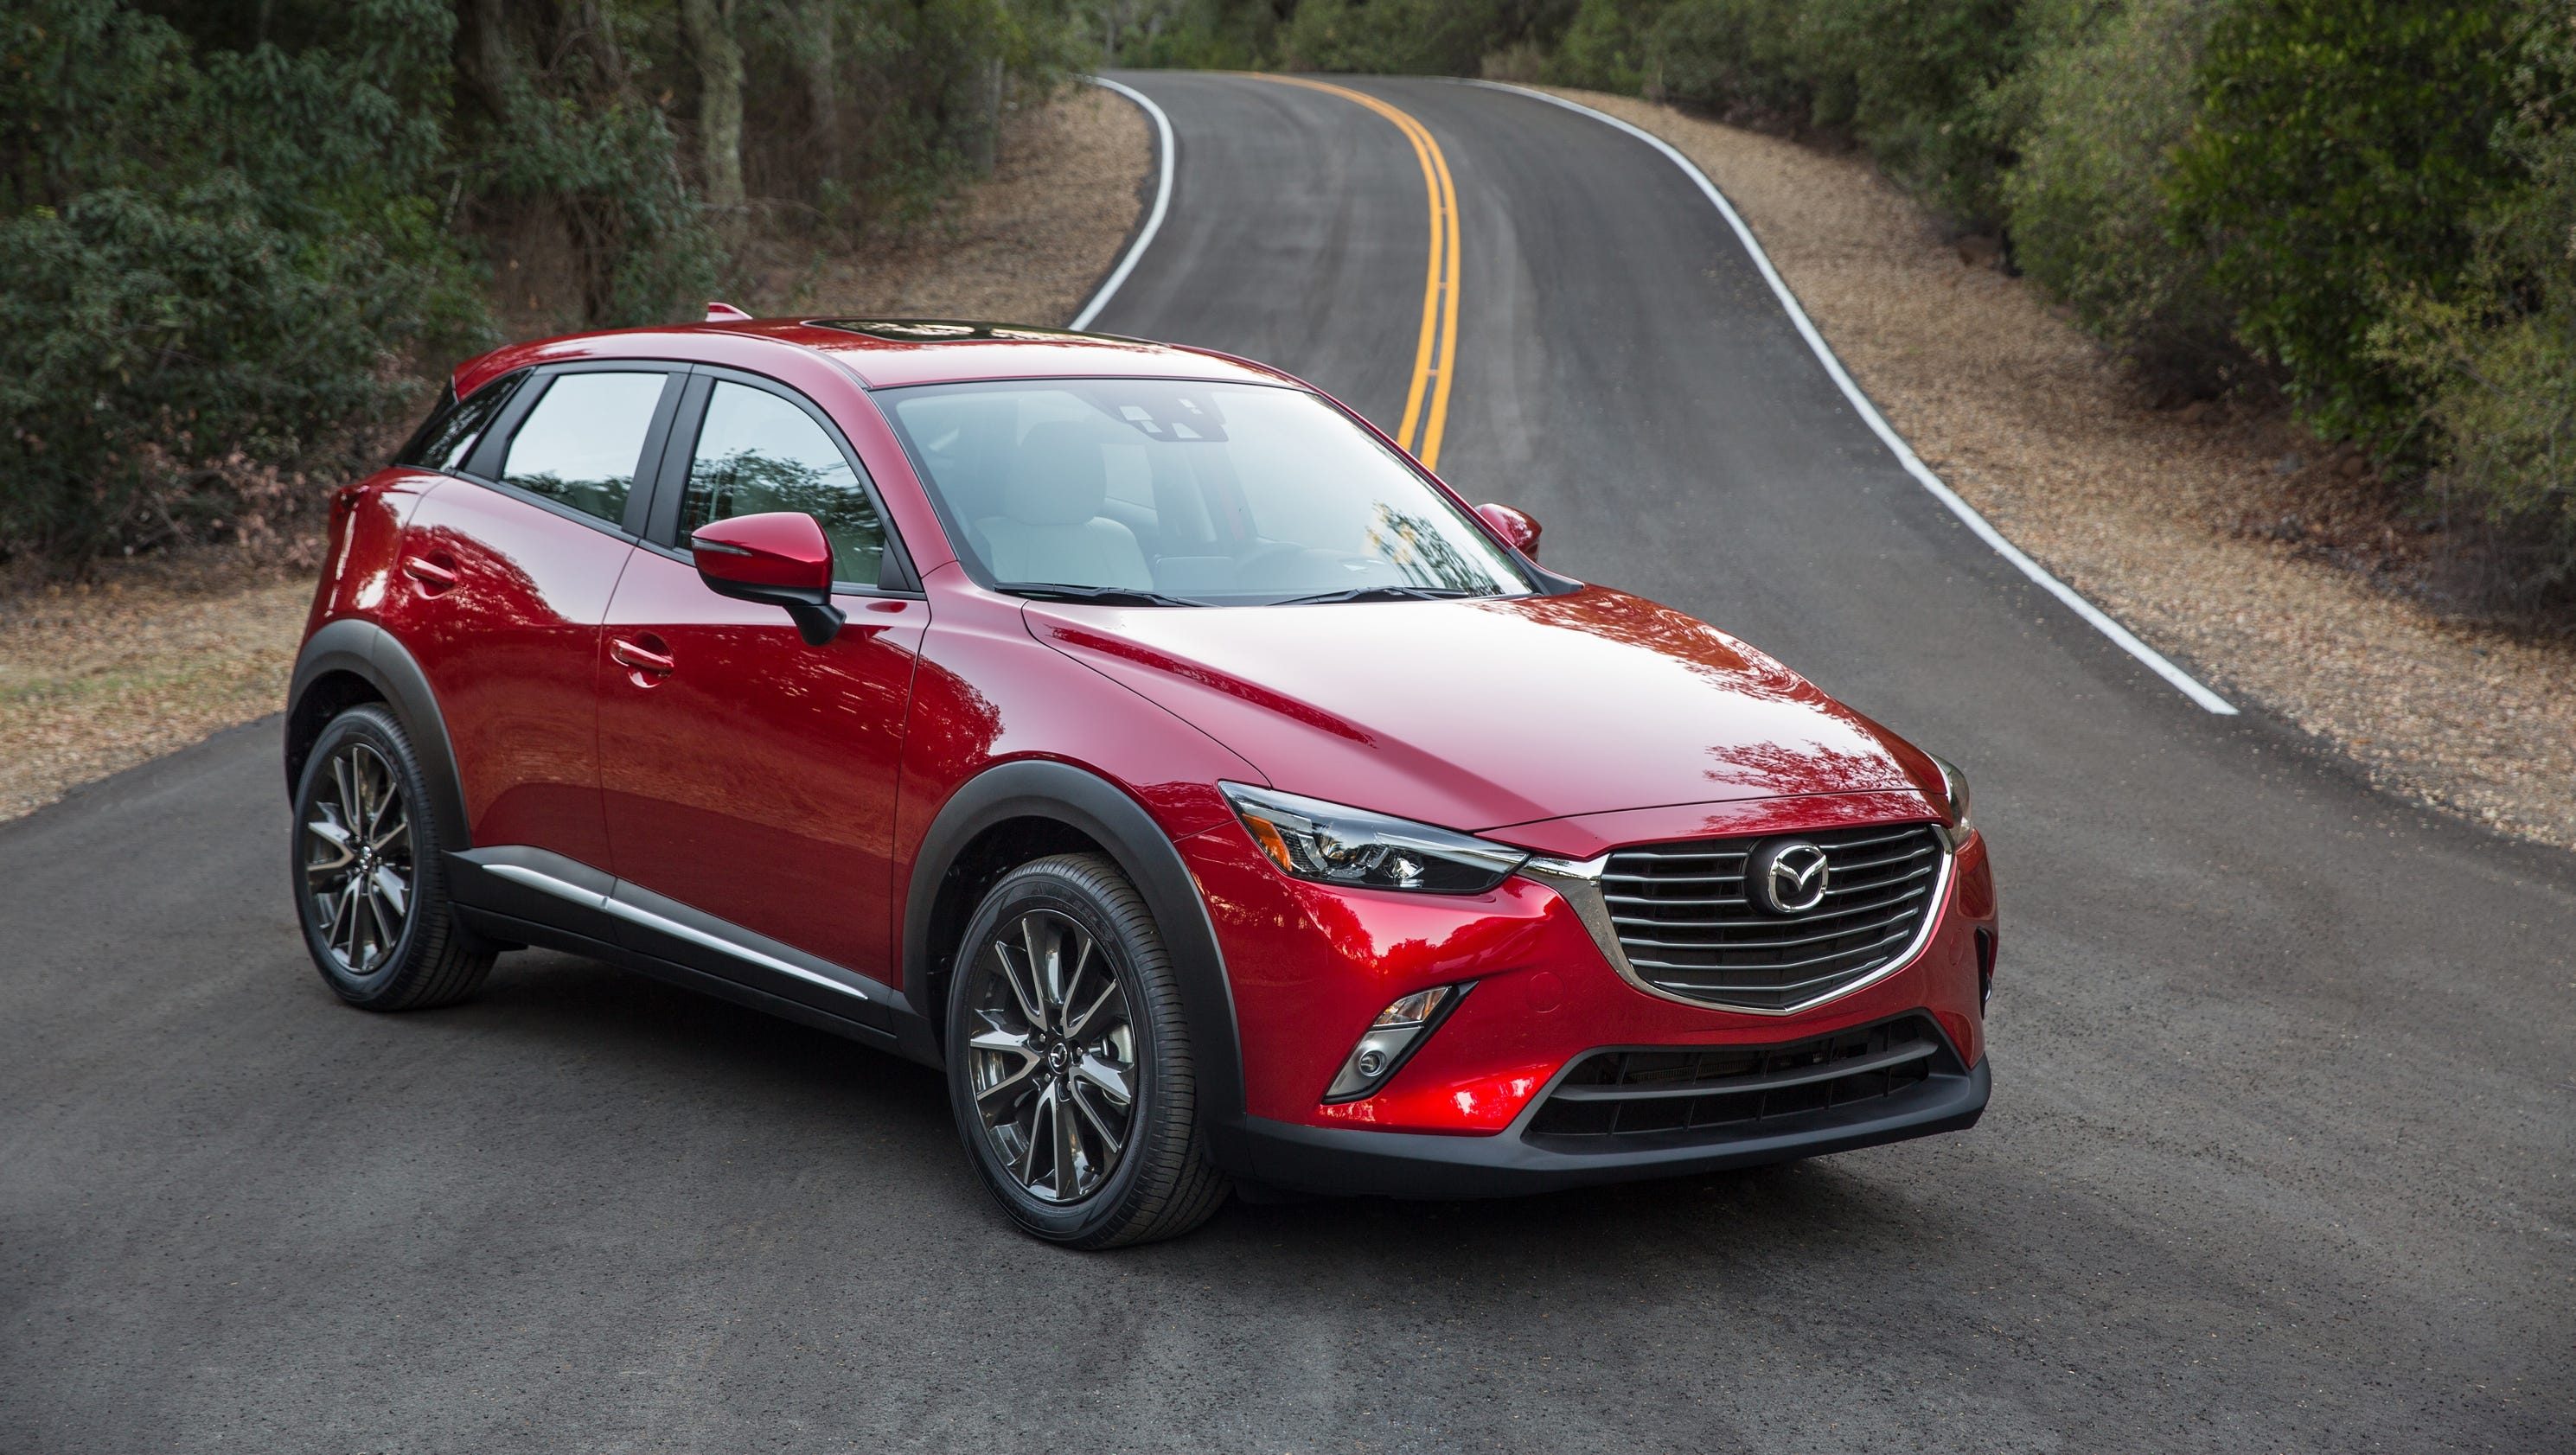 mazda cx 3 review small suv sacrifices practicality. Black Bedroom Furniture Sets. Home Design Ideas